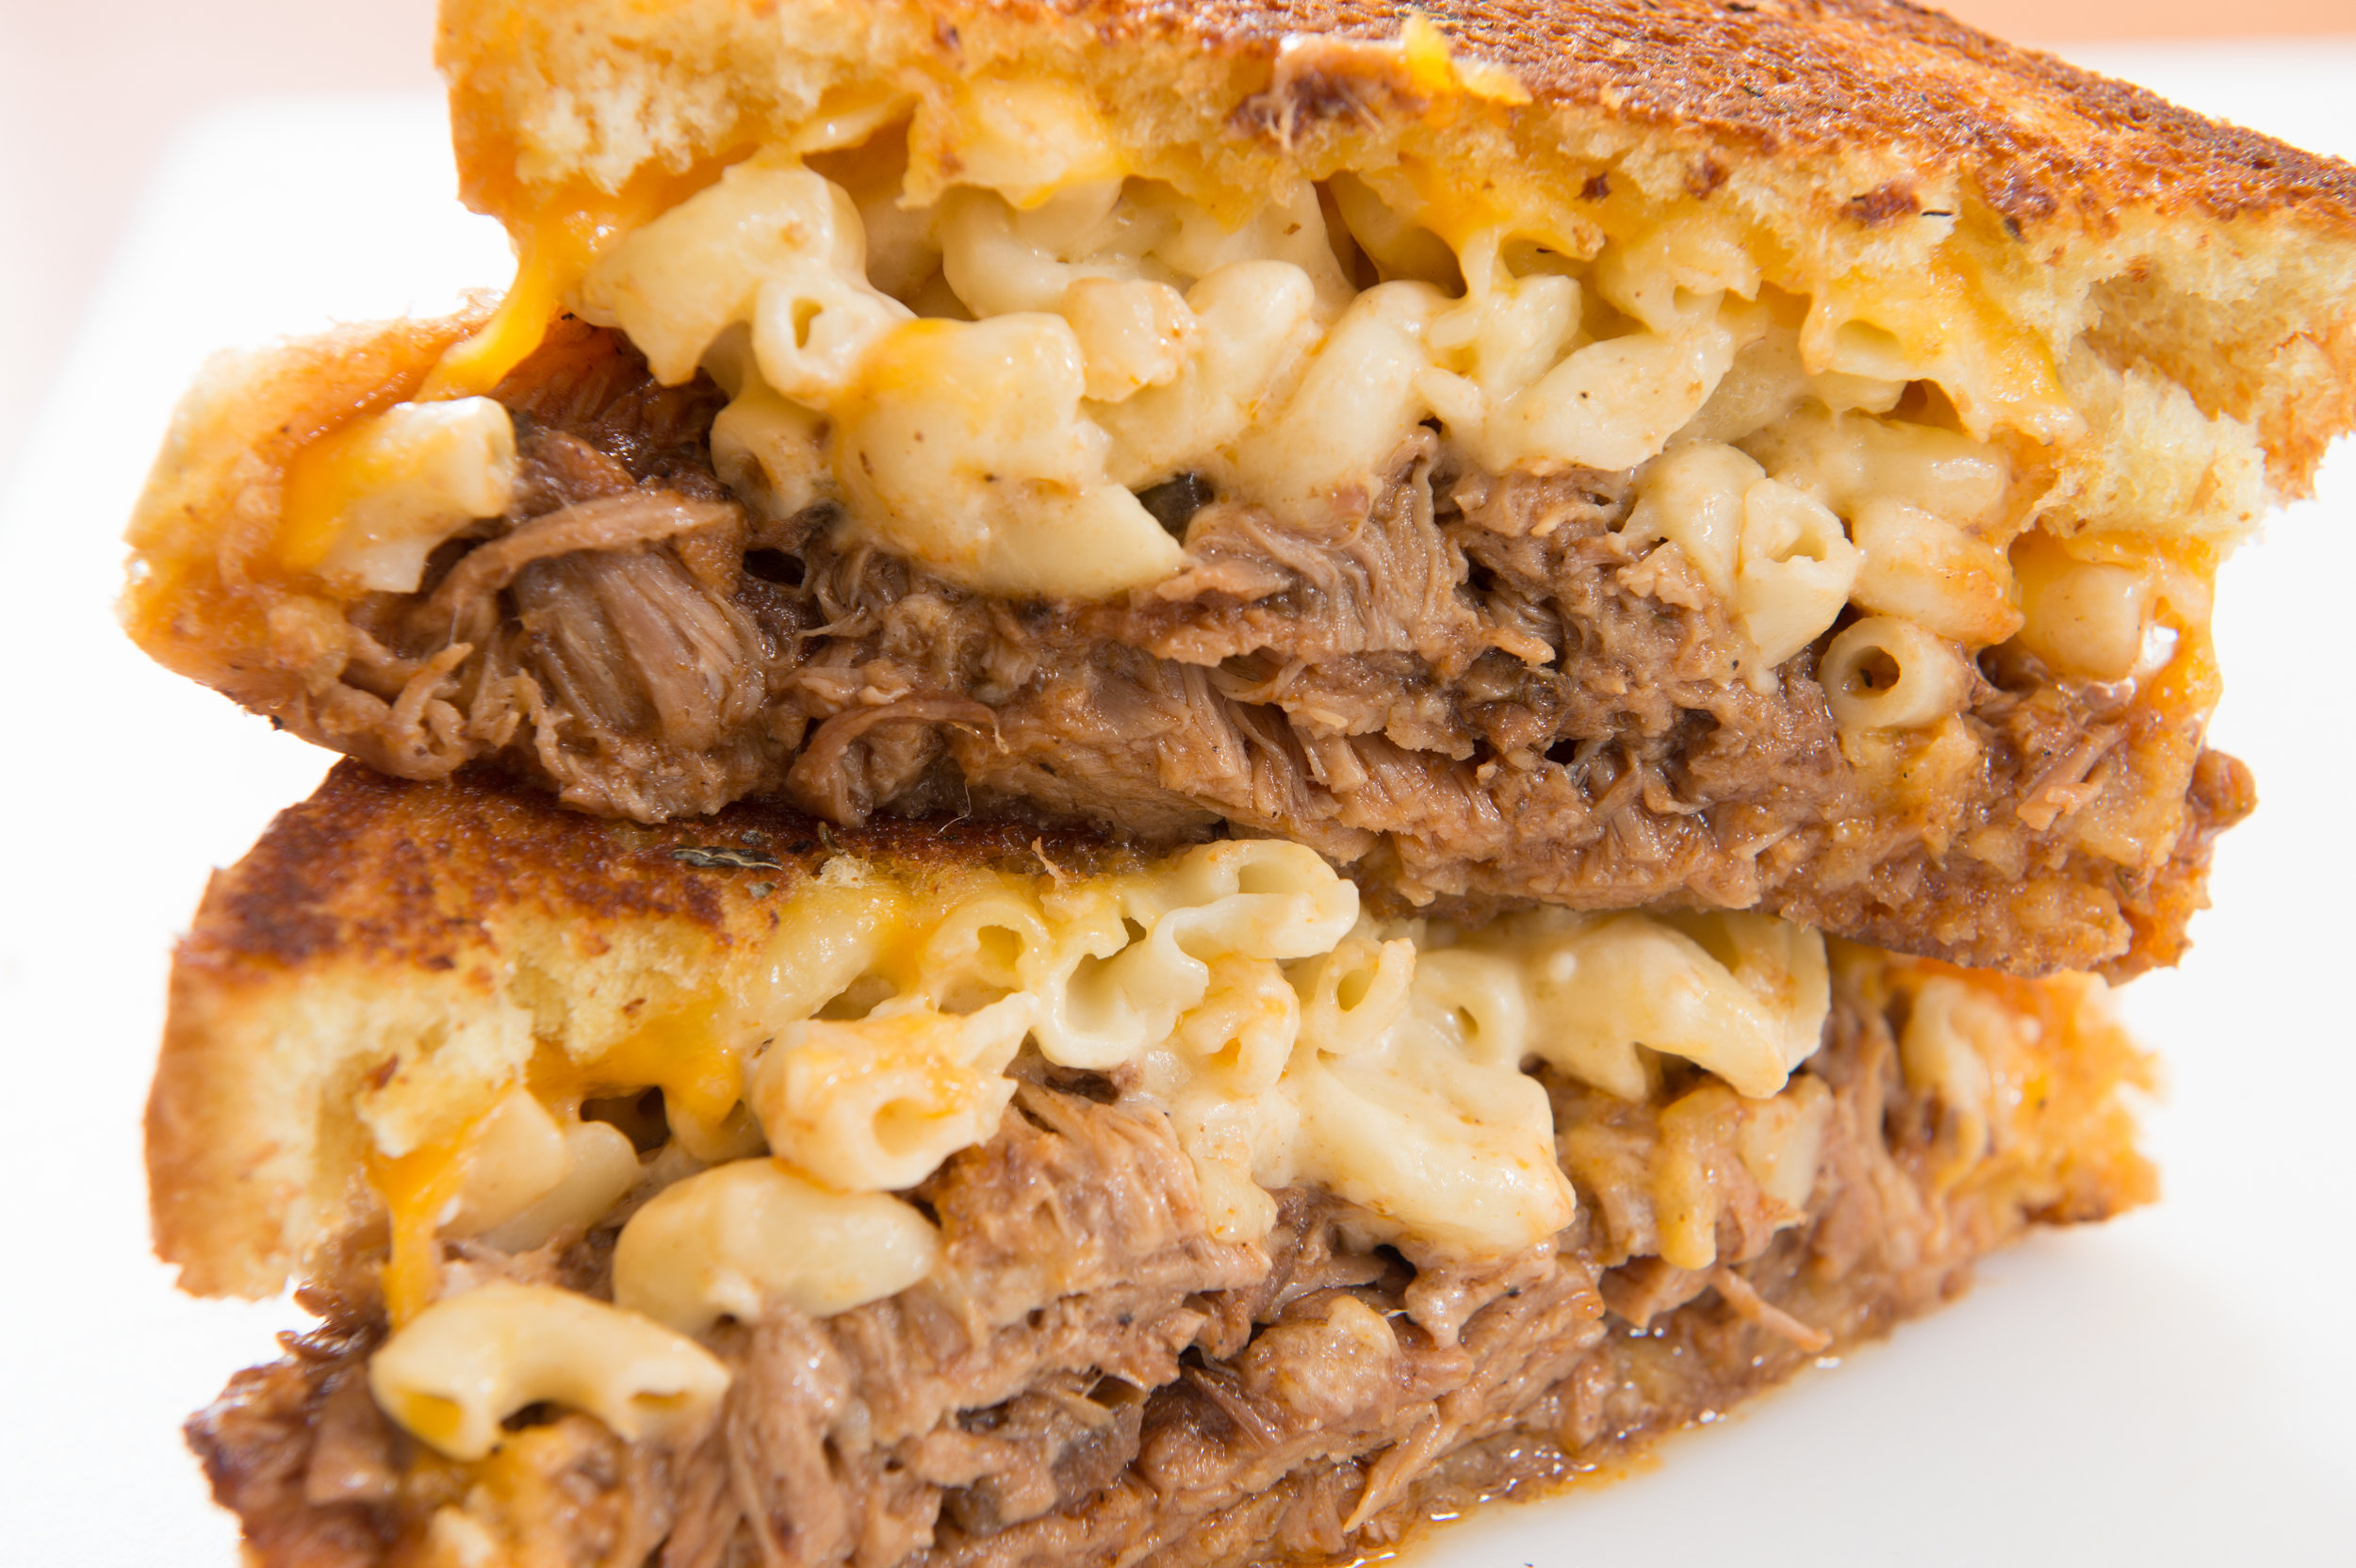 Royale  - BBQ pulled pork topped with creamy mac n cheese and more cheddar cheese on grilled texas toast.